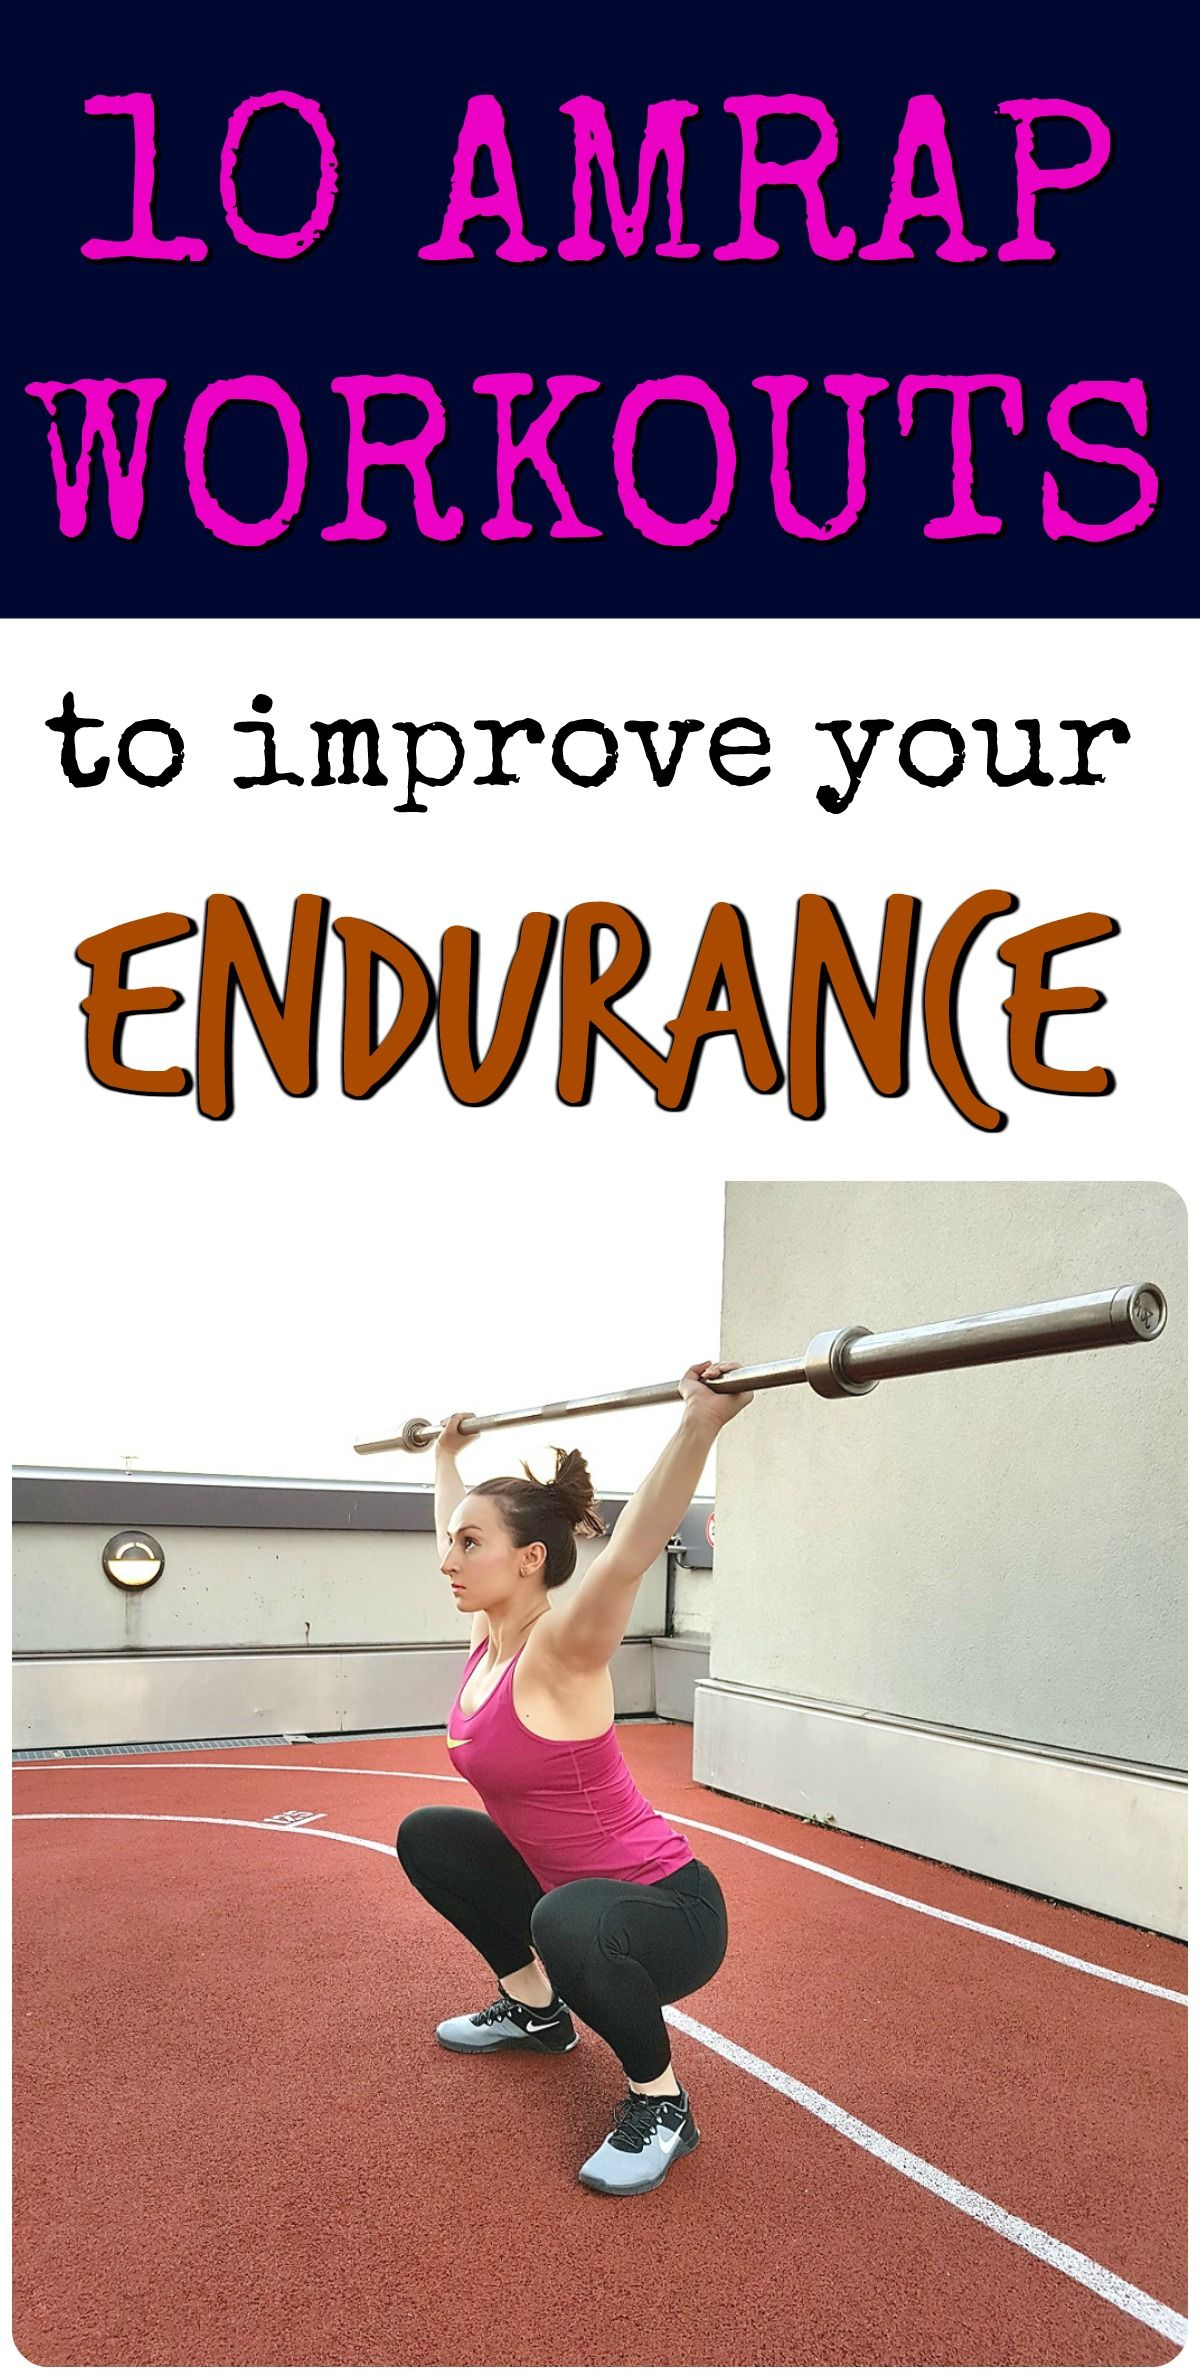 10 AMRAP Workouts To Improve Your Endurance Health and